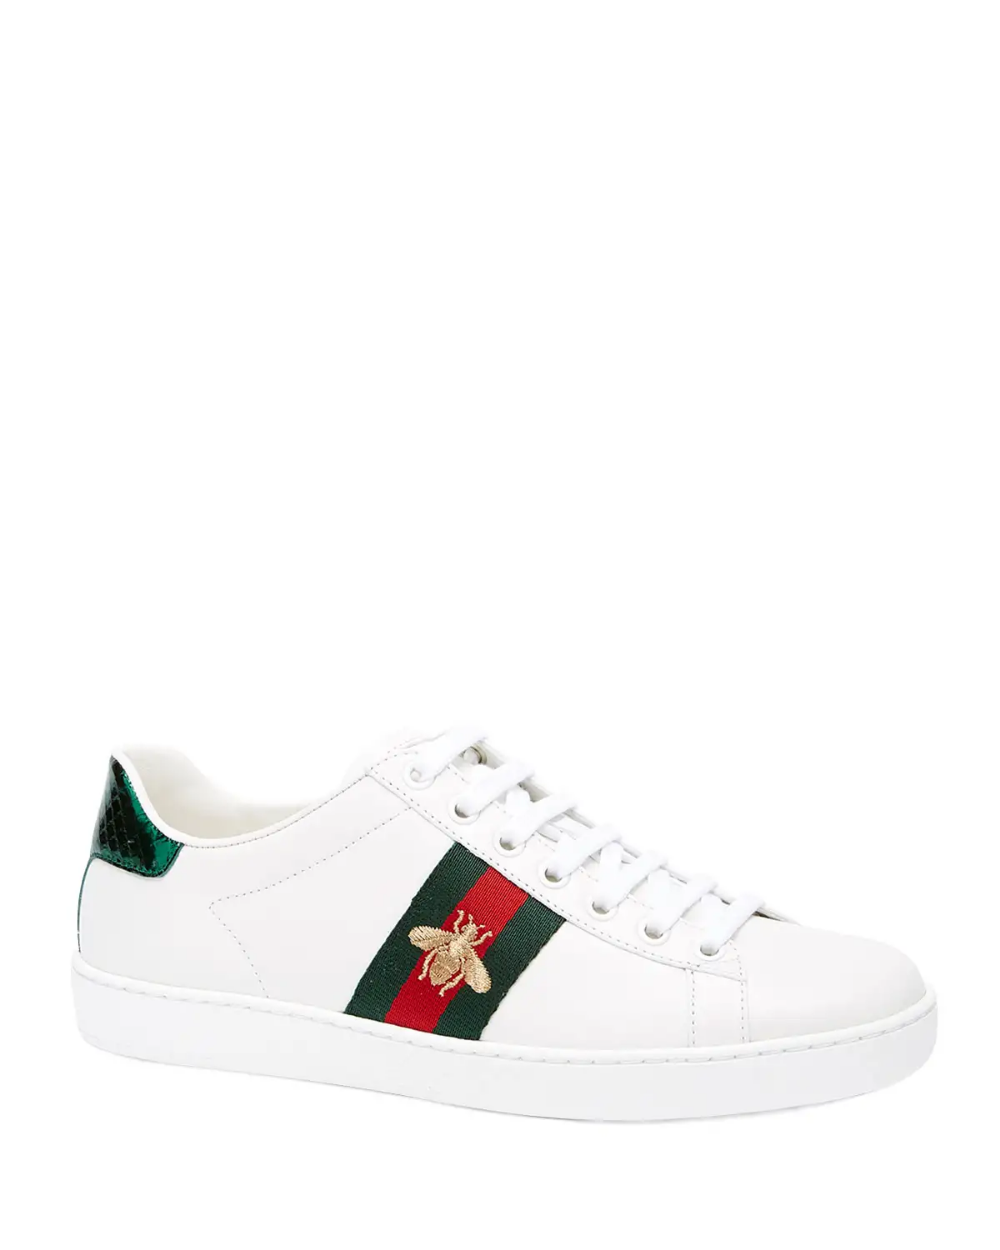 Gucci Bee Sneaker   Gucci ace sneakers